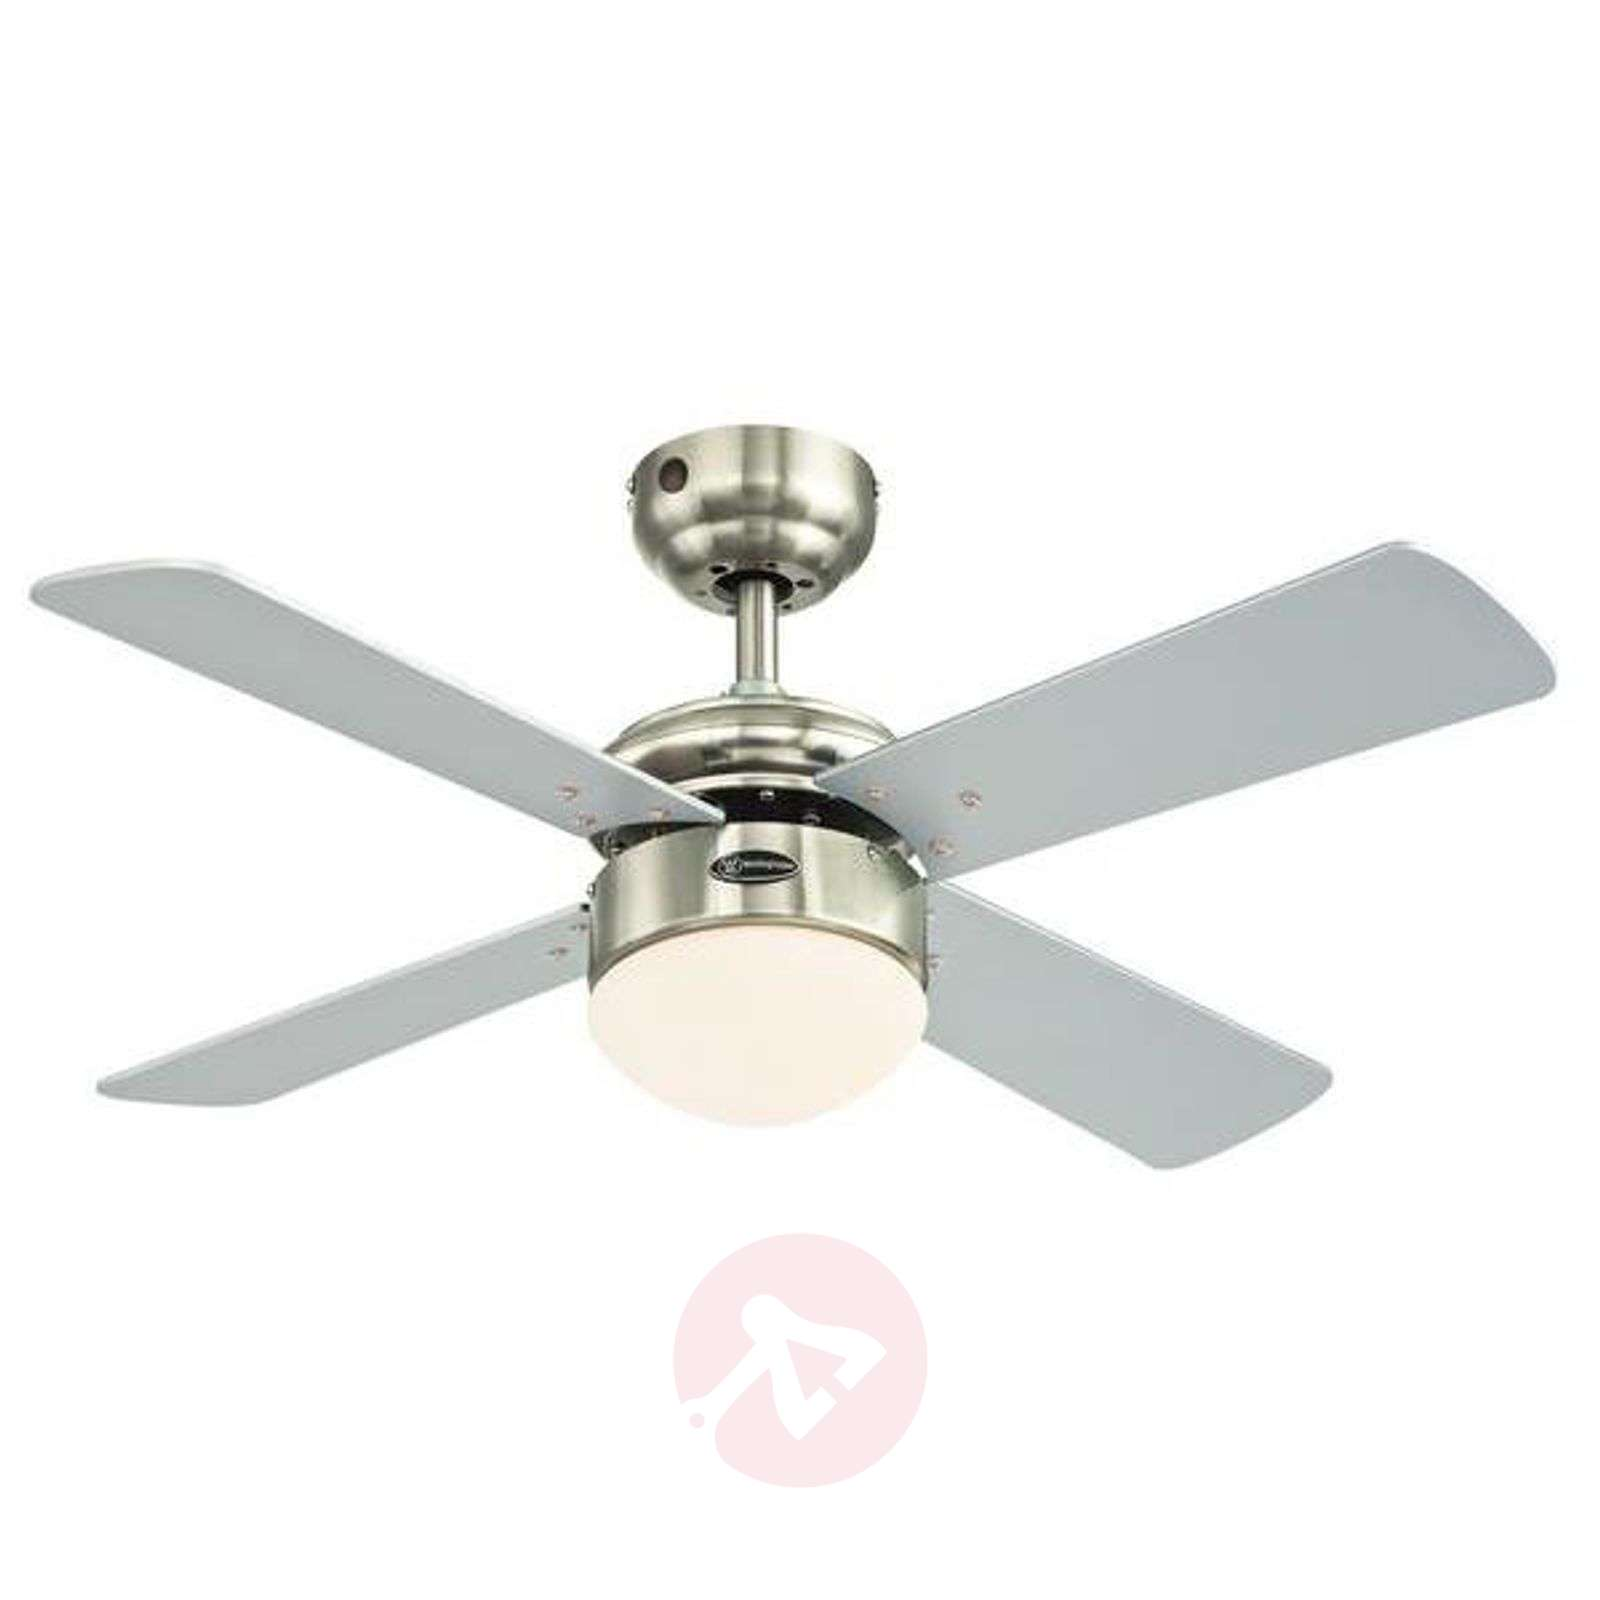 Ceiling fan Colosseum with LED light-9602273-02